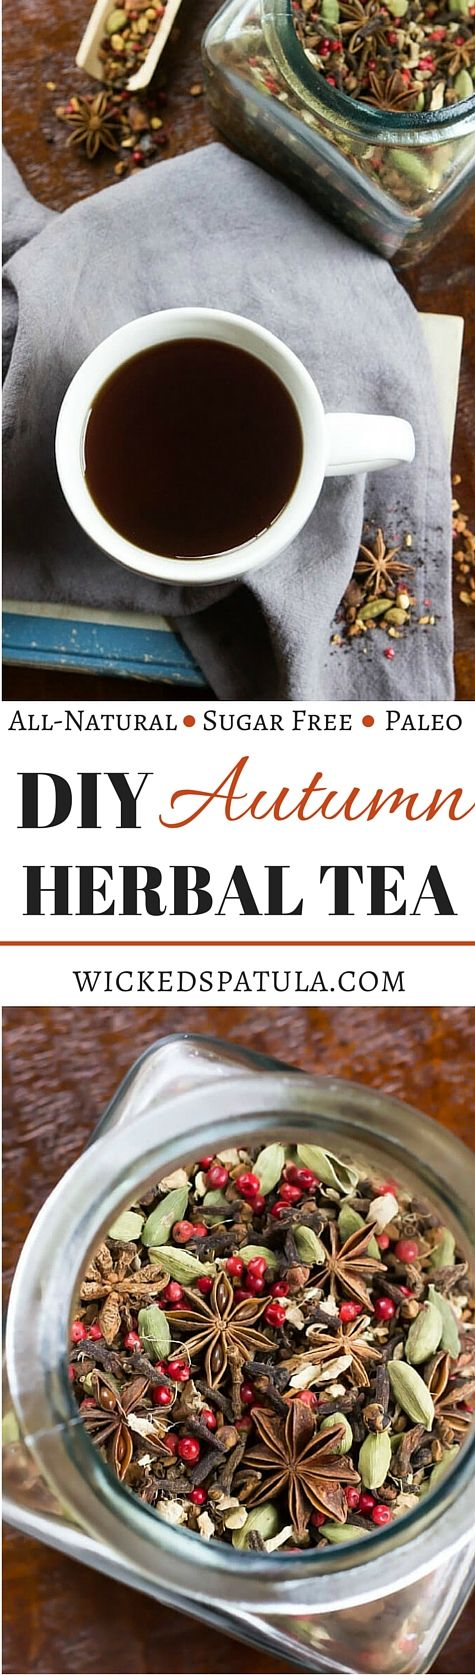 DIY Autumn Herbal Tea Blend - Tastes like fall in a cup! Also perfect for a homemade Christmas gift! | wickedspatula.com